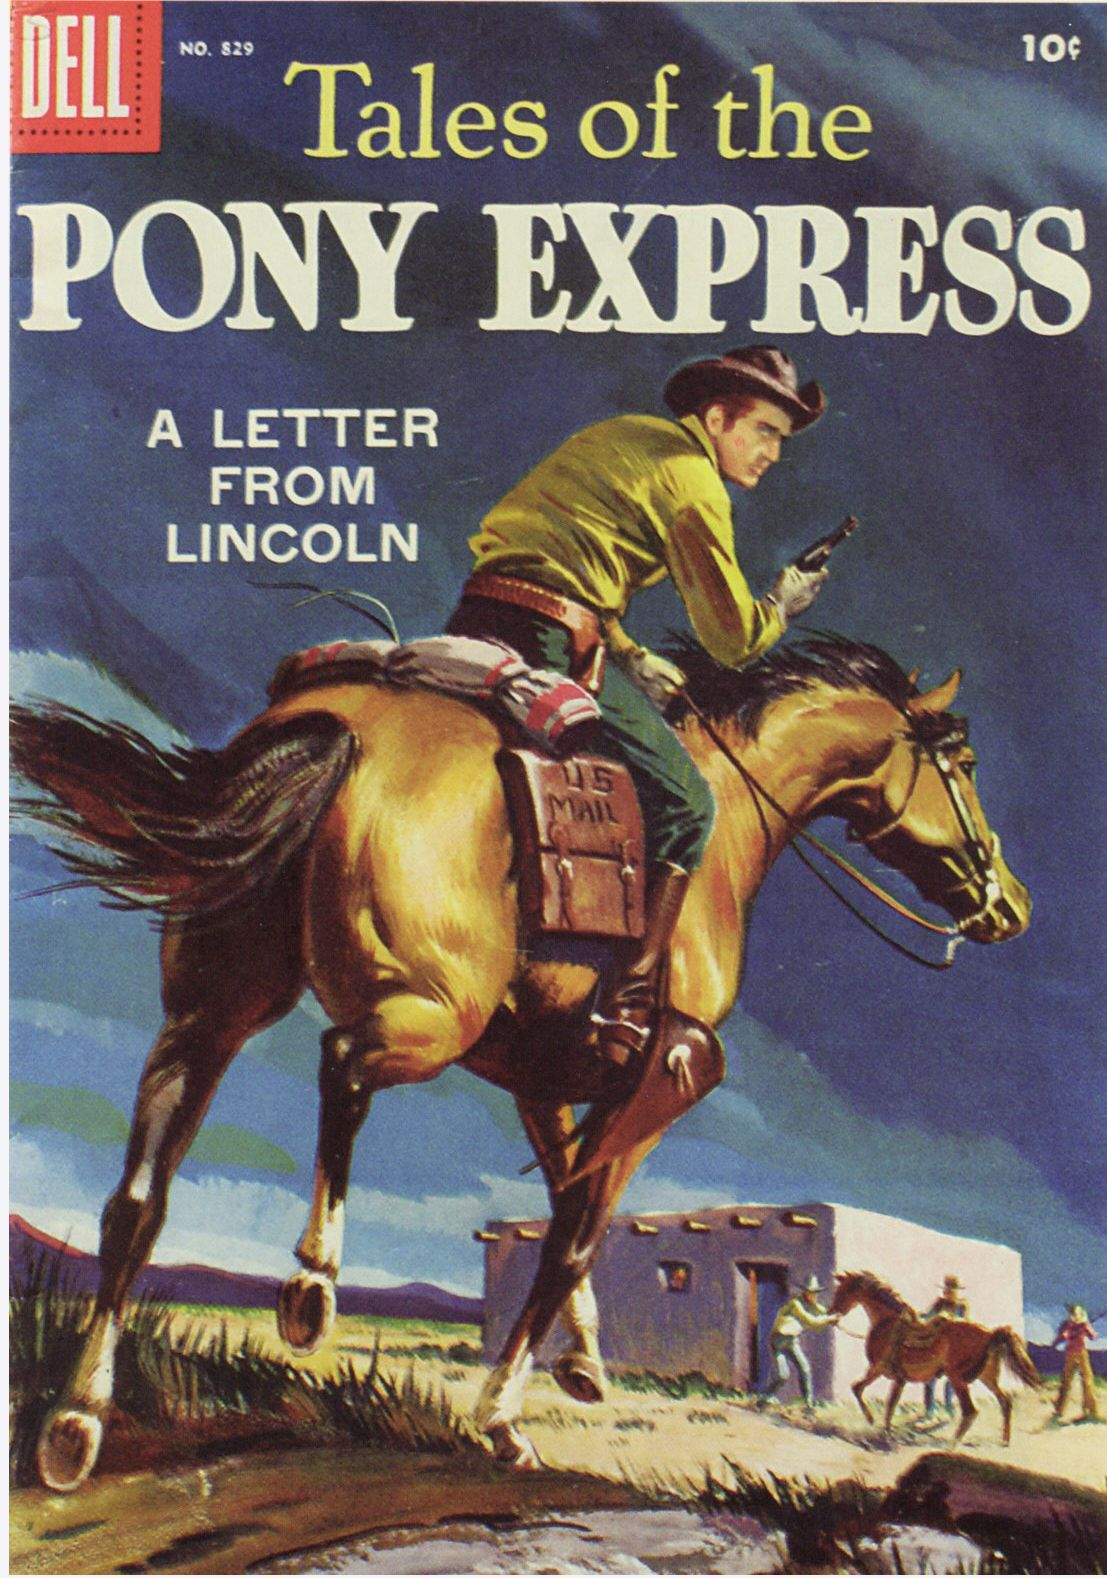 Pony Express poster. Smithsonian collection.